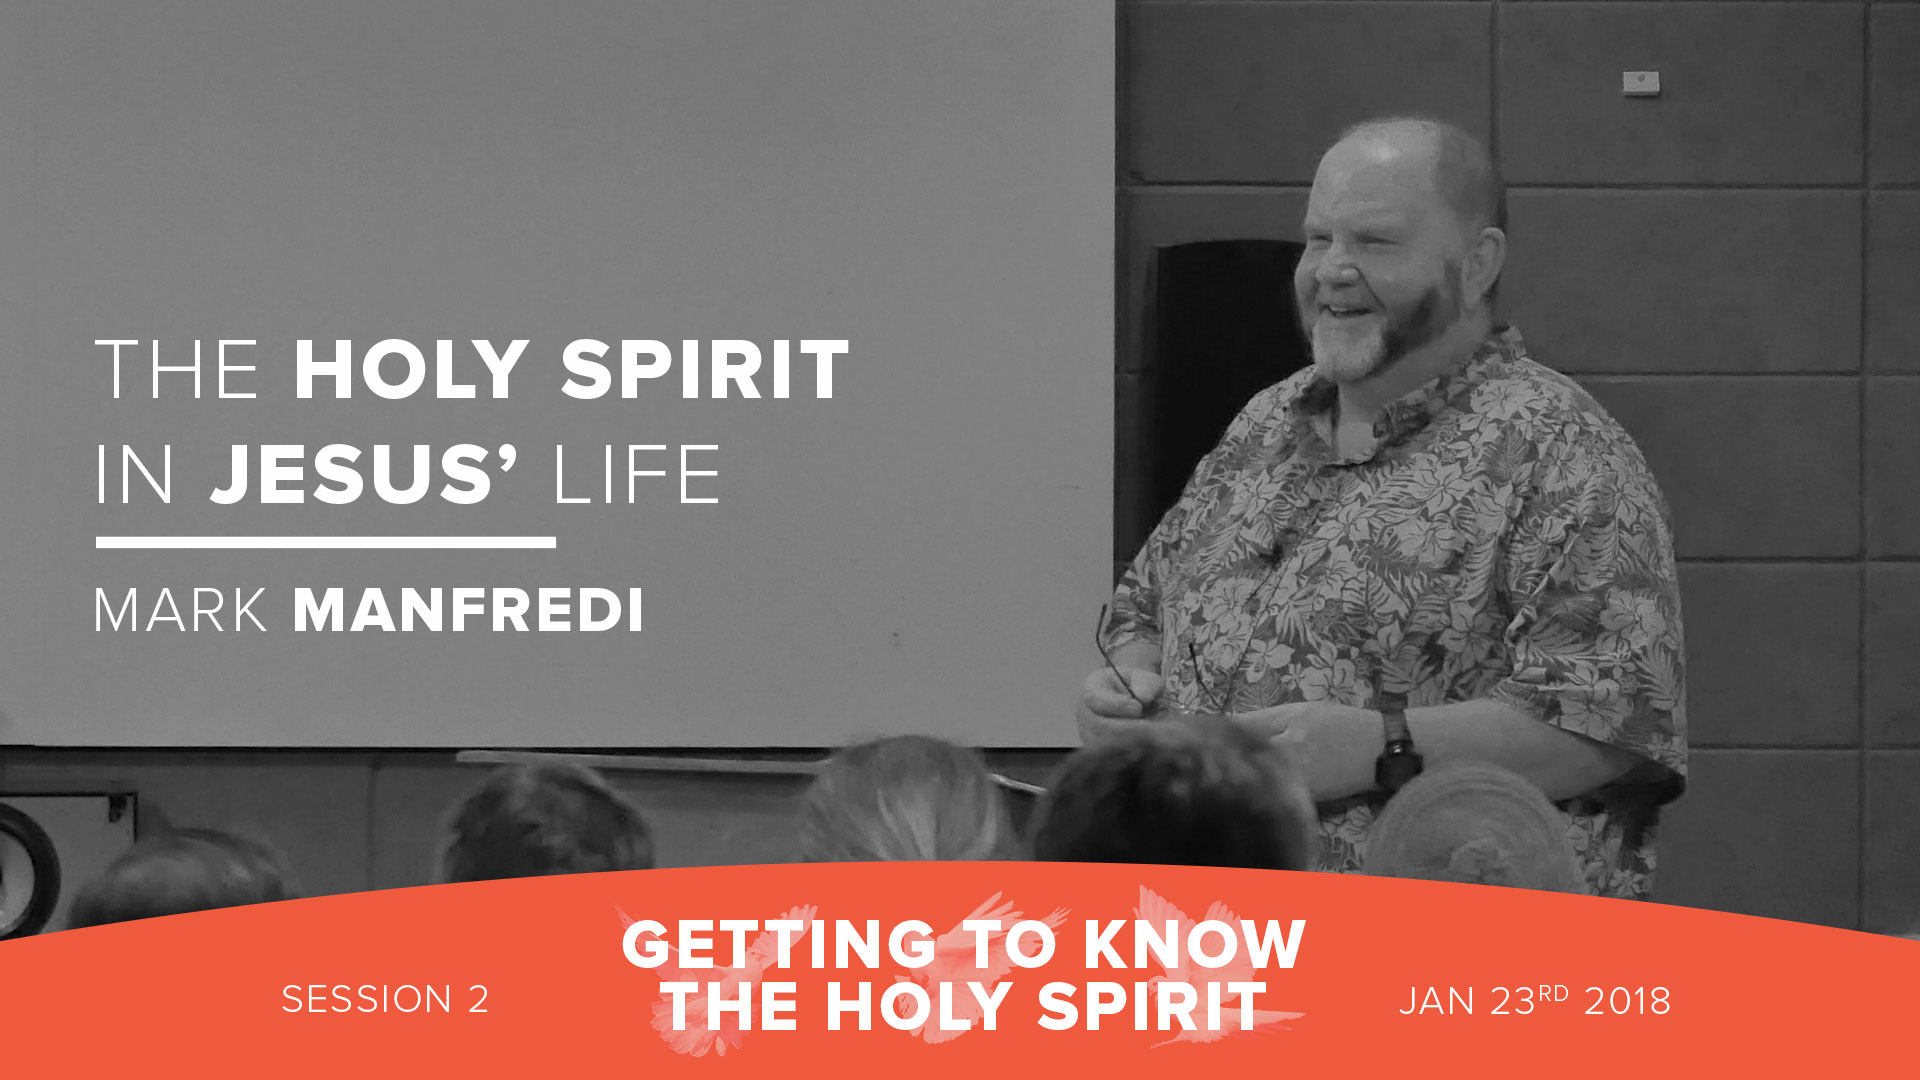 Session 2 - The Holy Spirit in Jesus' life